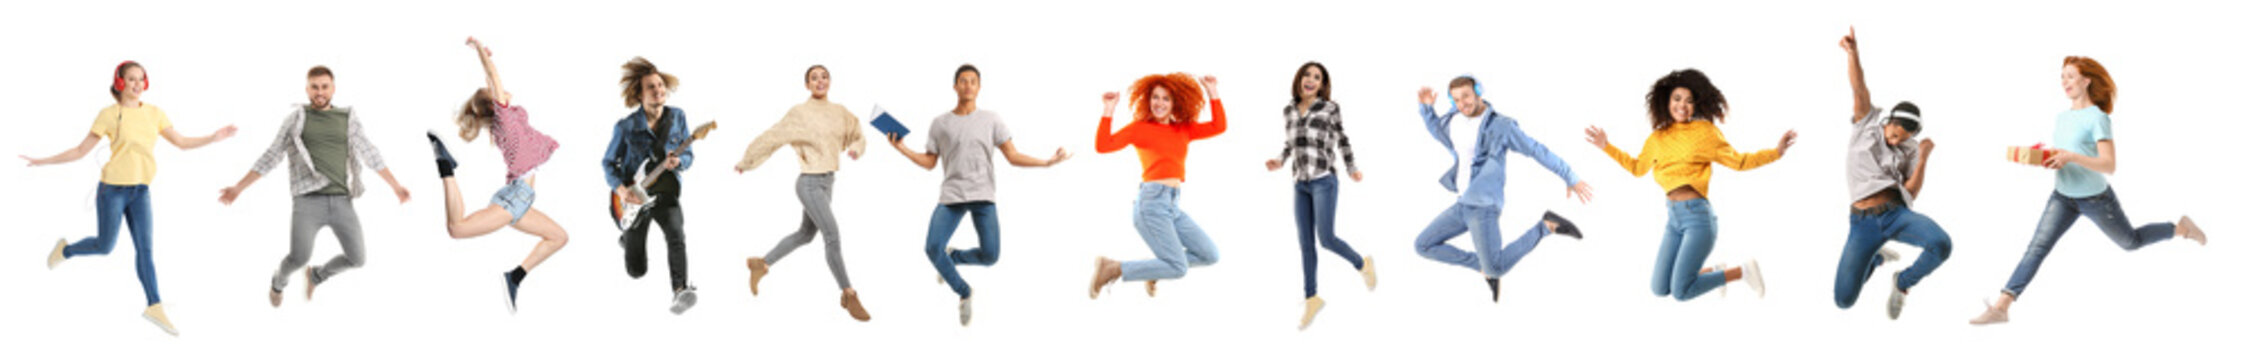 Set of different jumping people on white background